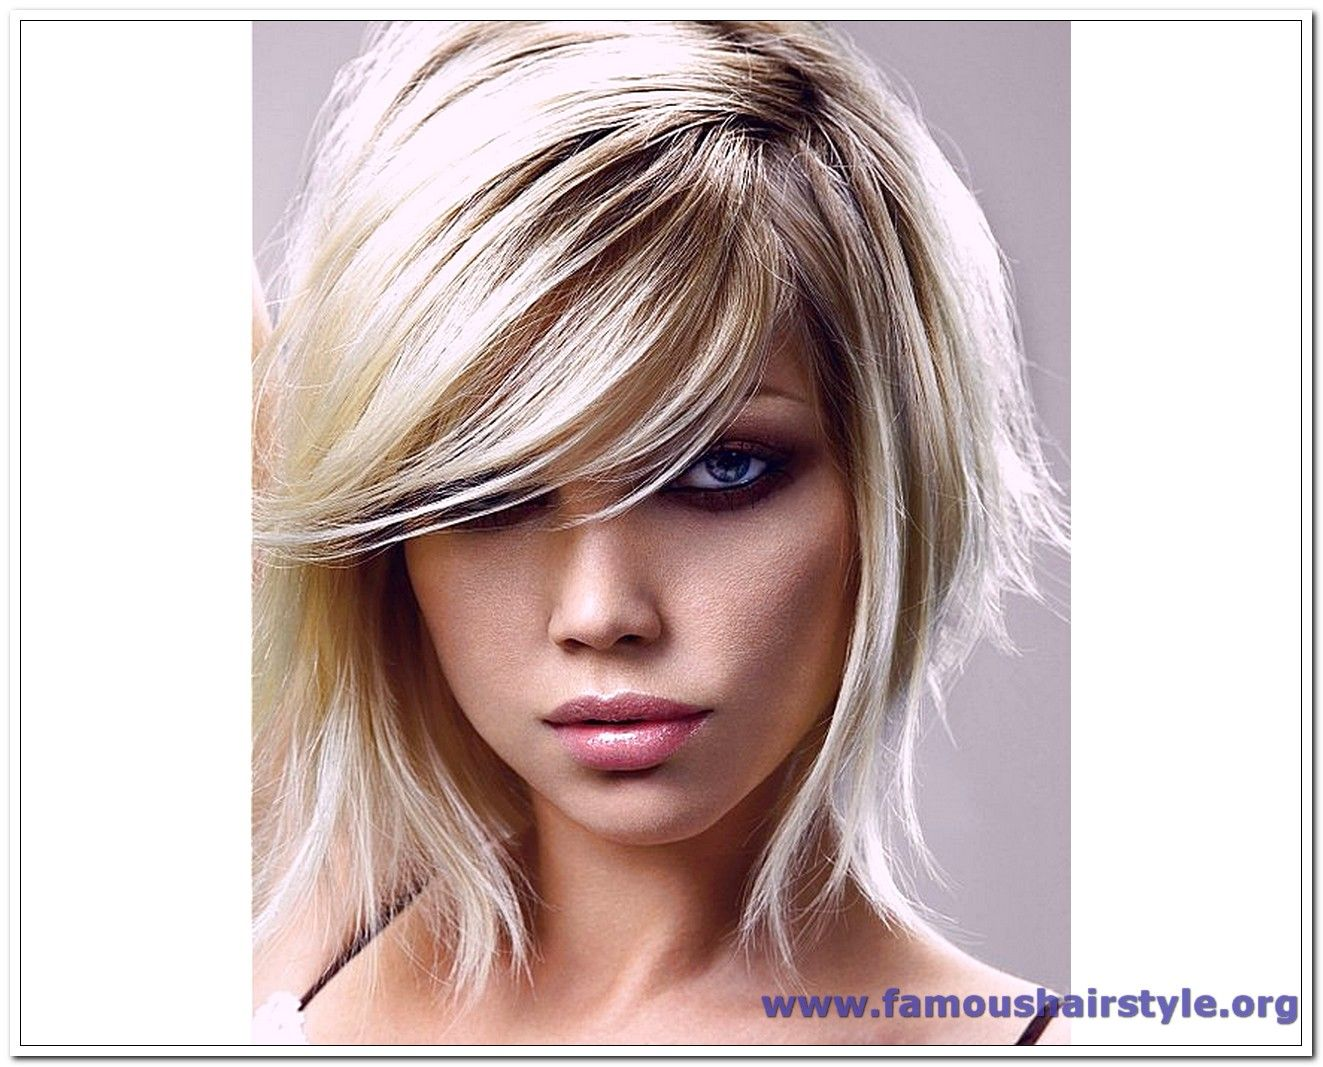 Cute blonde short haircut hairstyle ideas new pinterest